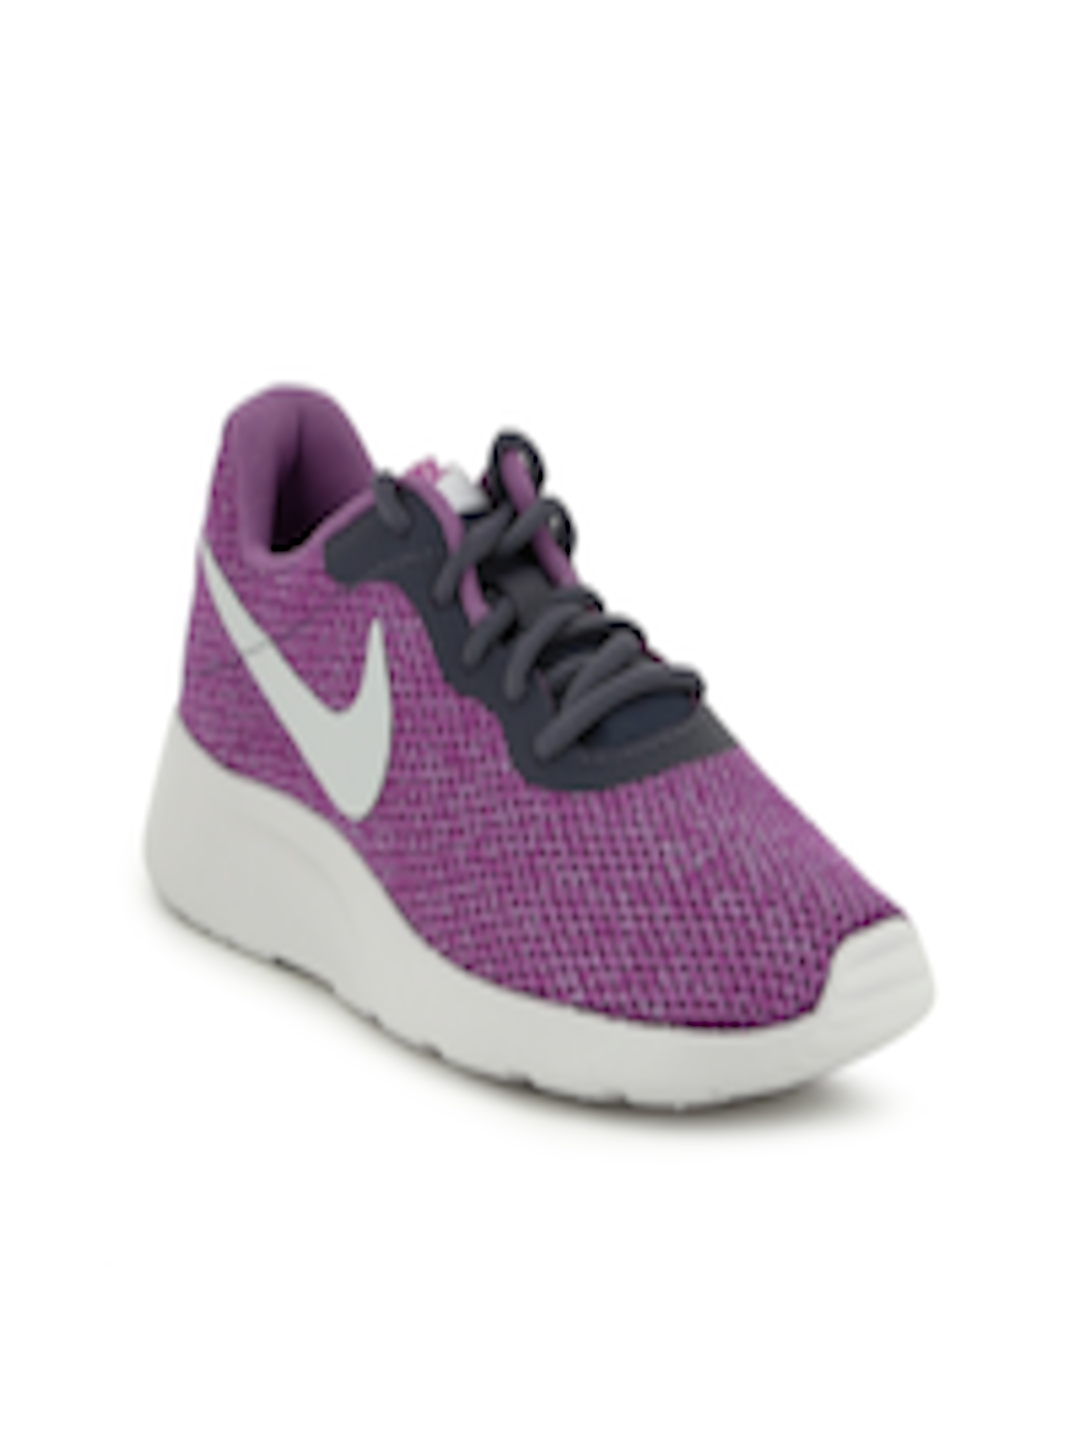 low cost buy nike women purple tanjun sneakers casual shoes for women  2375645 myntra 8bd65 5a656 253ecf780